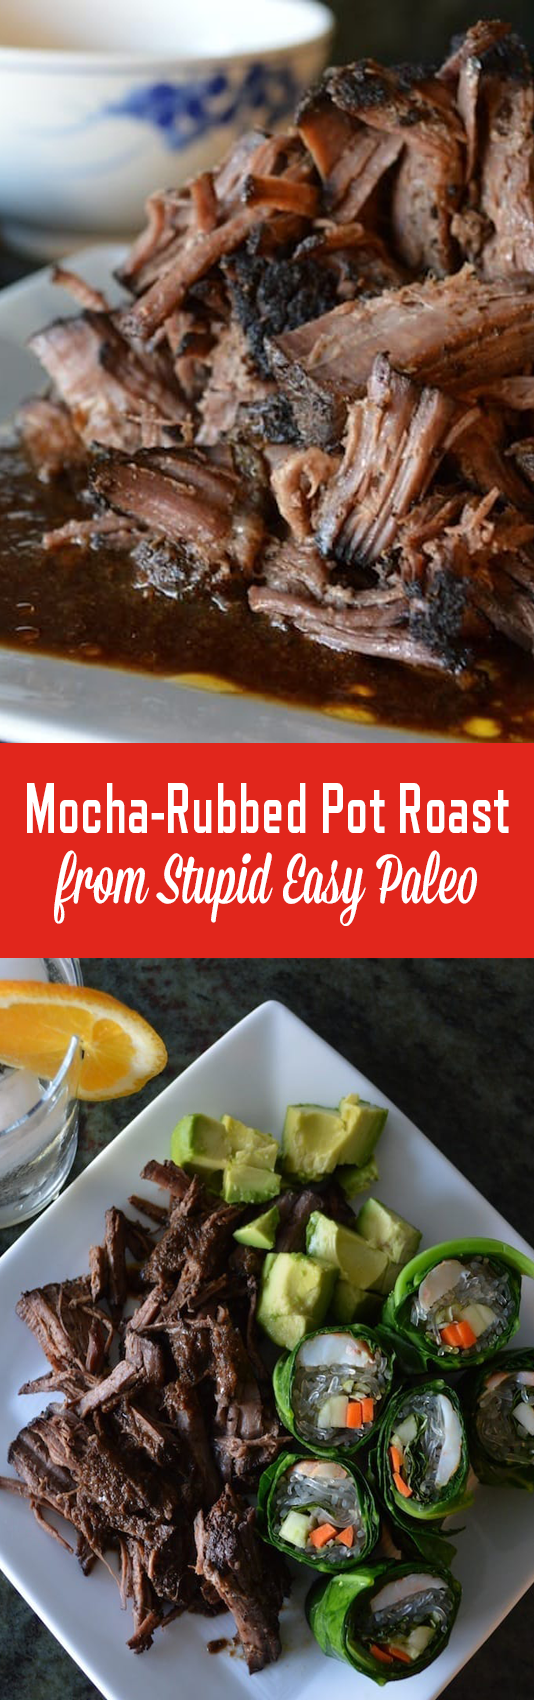 Slow Cooker Mocha-Rubbed Pot Roast is dusted with a delicious spice mixture, then cooked slowly so it's fall-apart tender. | StupidEasyPaleo.com